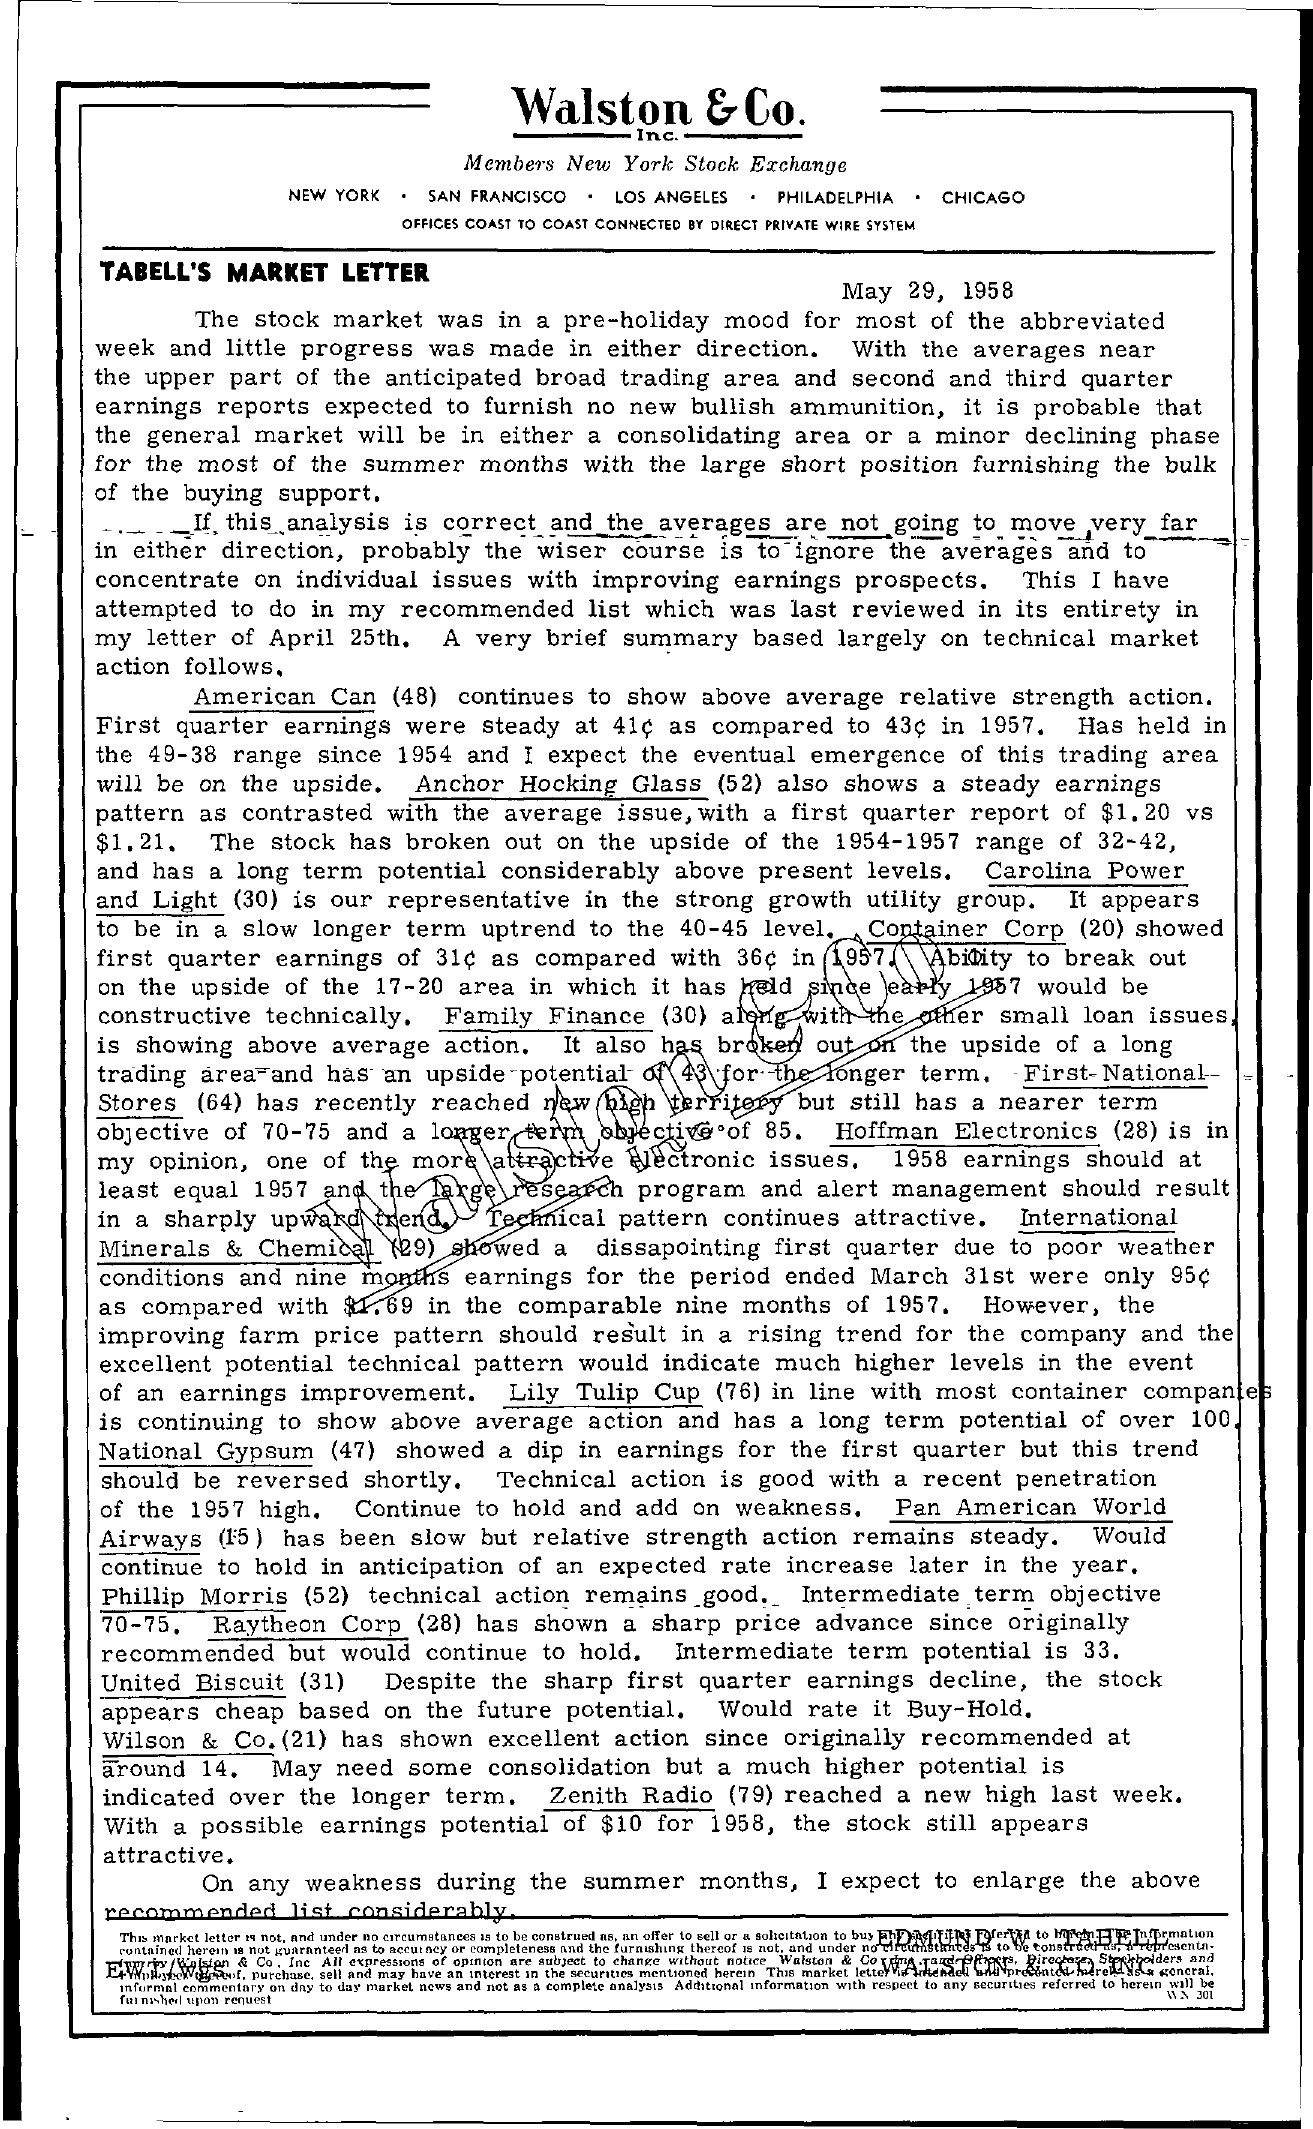 Tabell's Market Letter - May 29, 1958